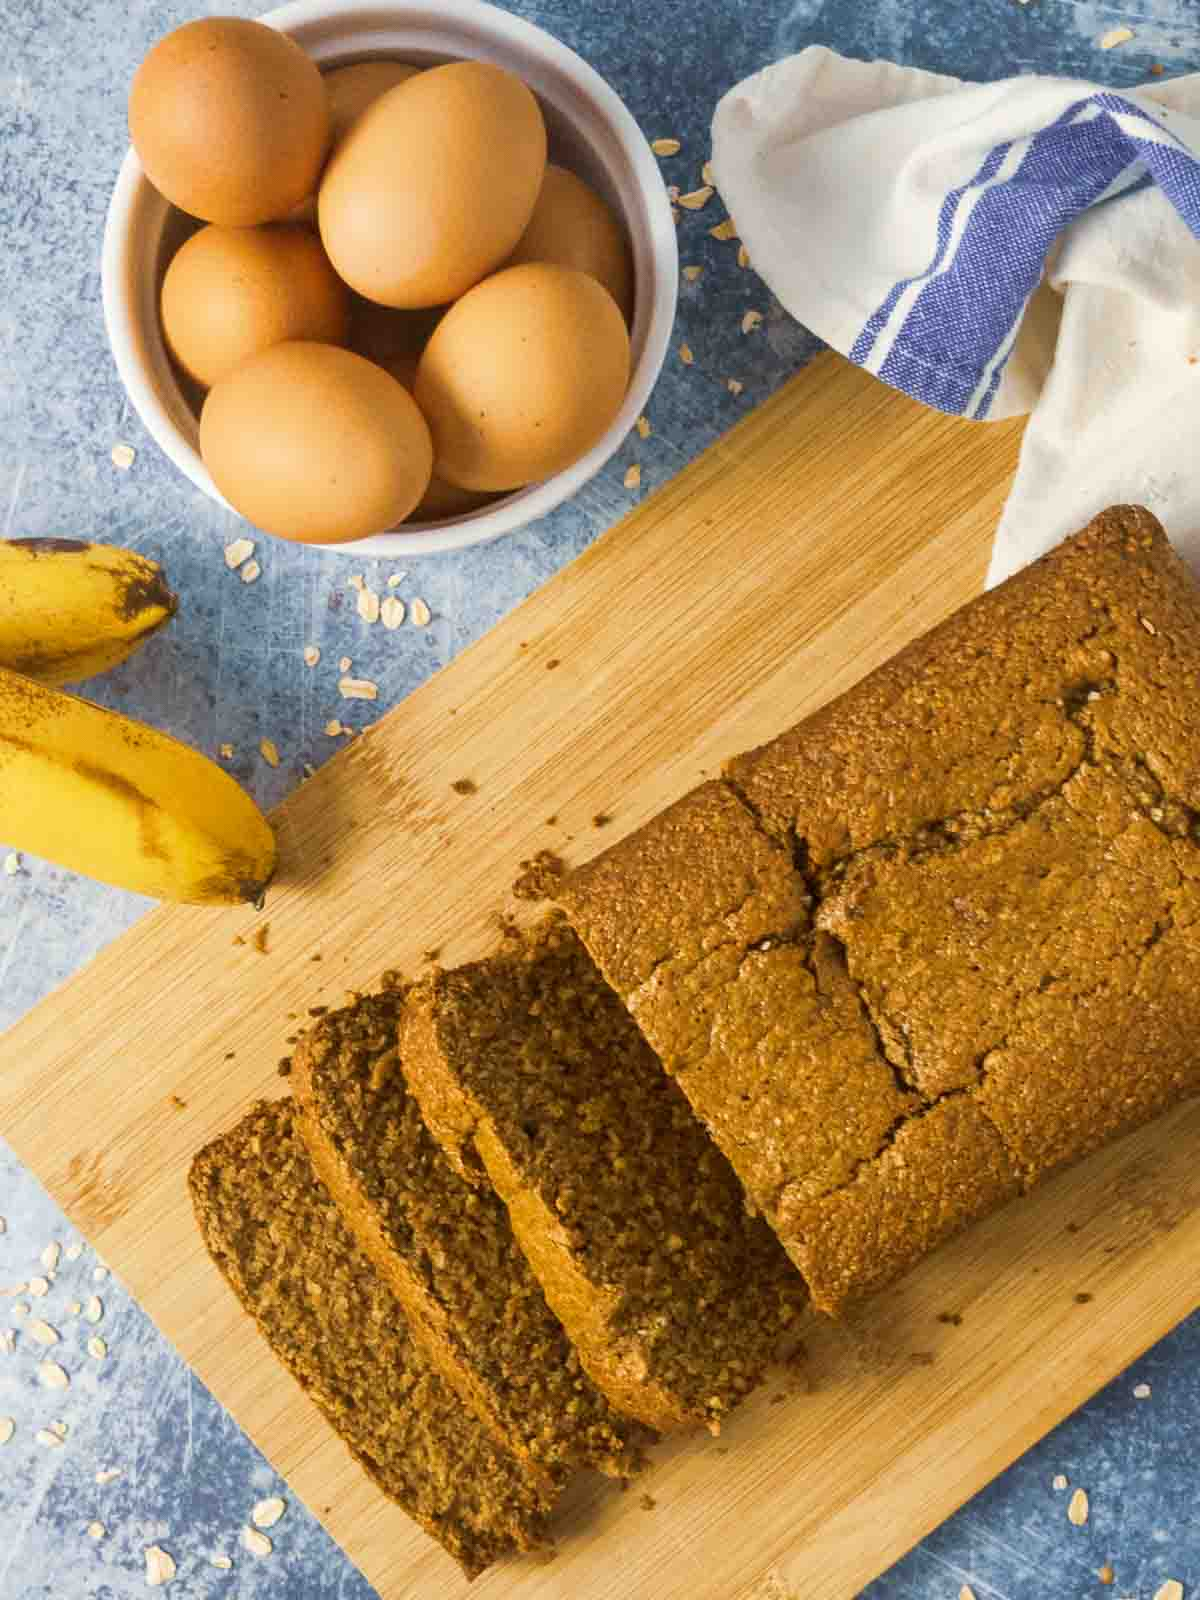 oat flour banana bread on cutting board with eggs and bananas